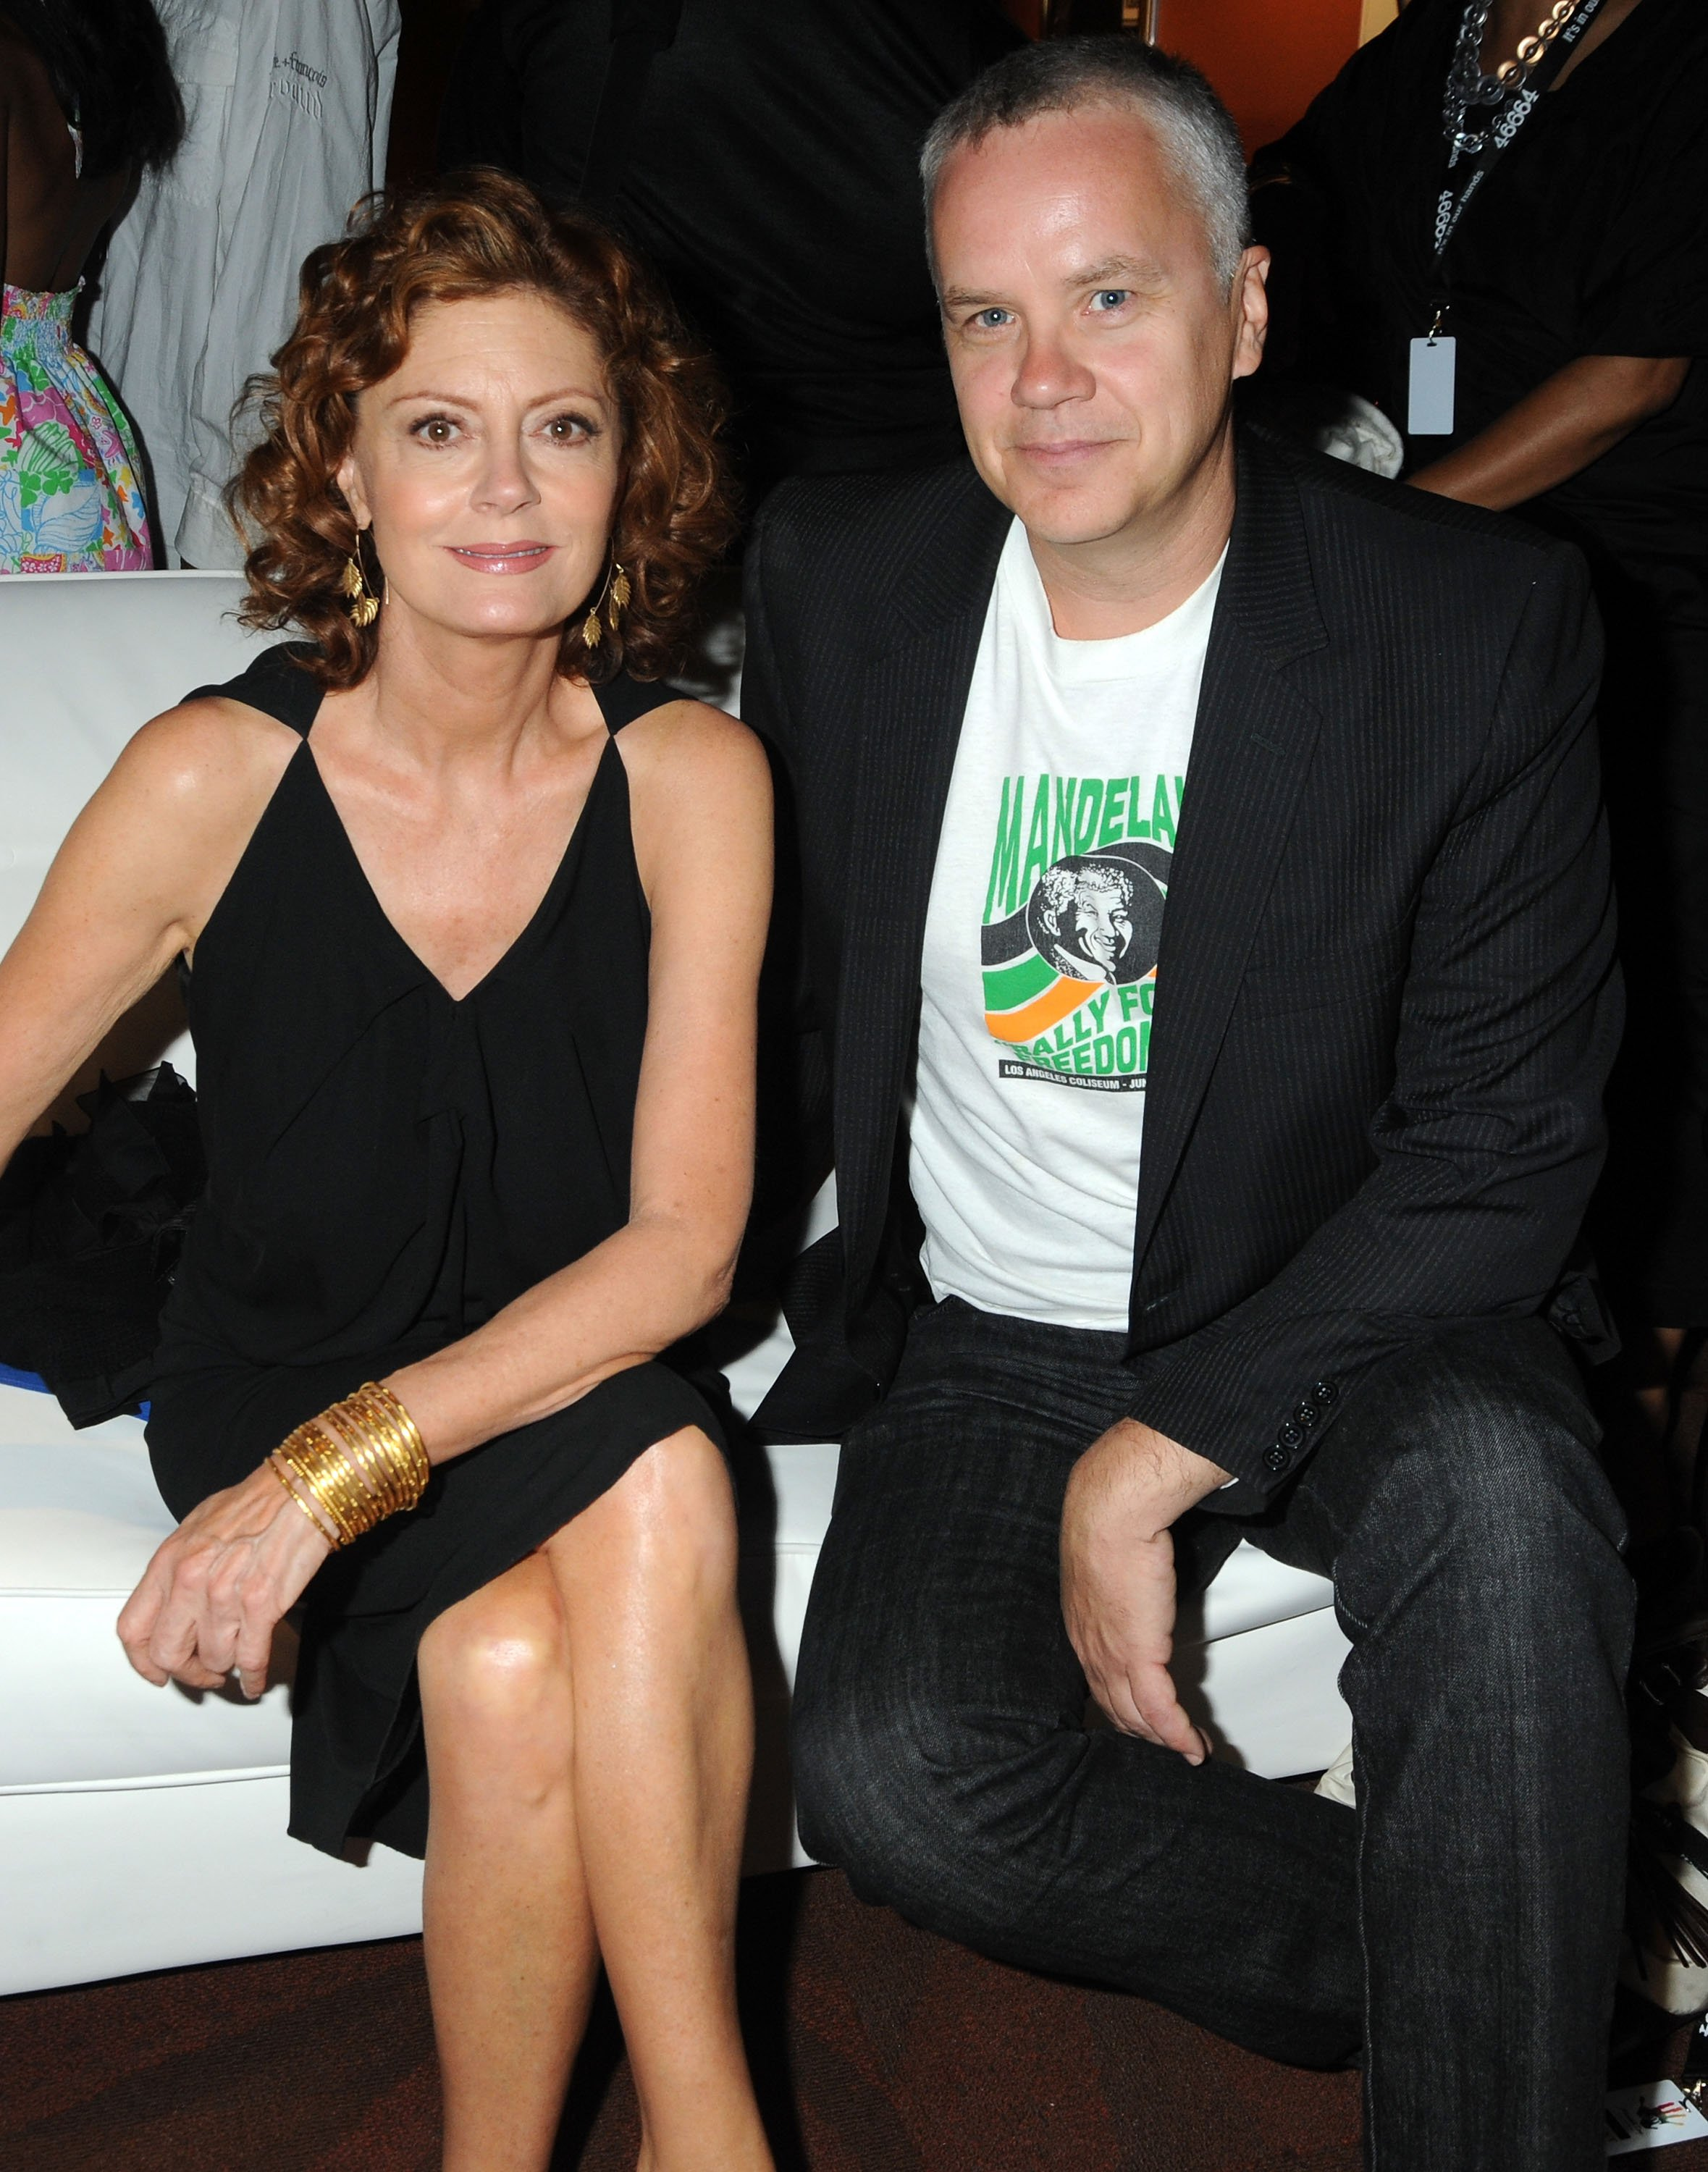 Susan Sarandon and Tim Robbins | Photo: Getty Images